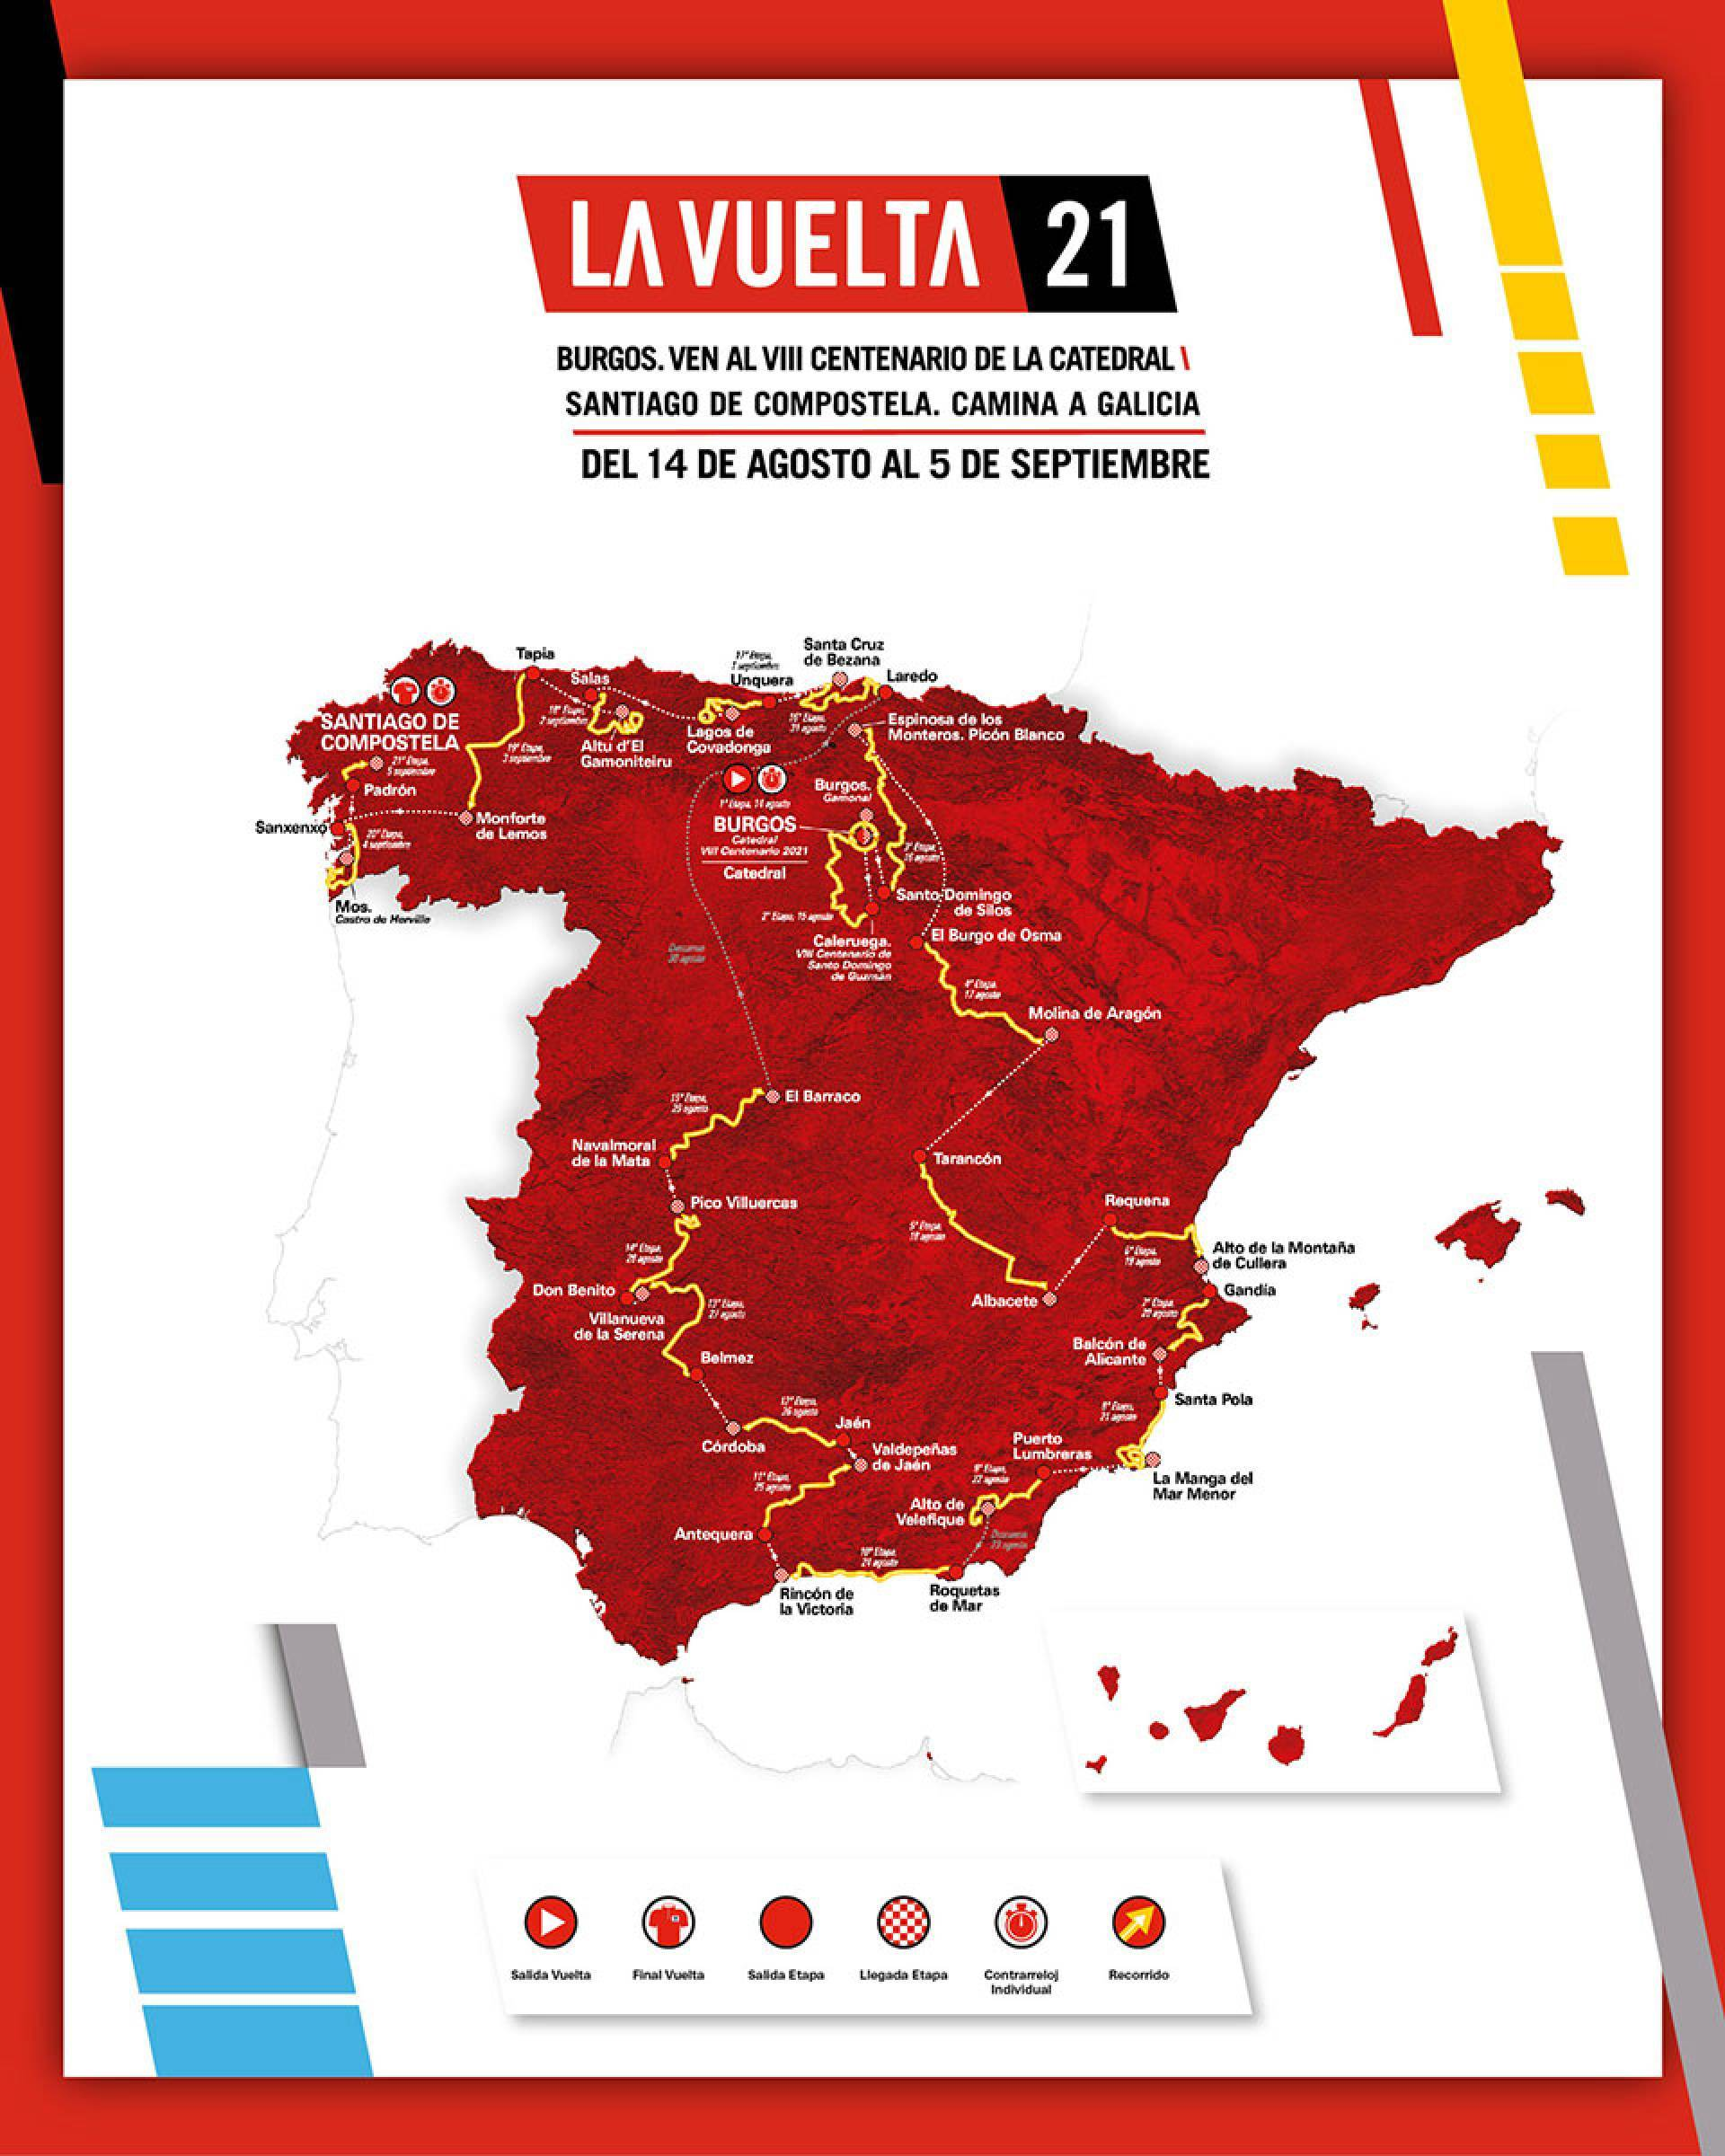 Vuelta a España Route includes the region of Murcia